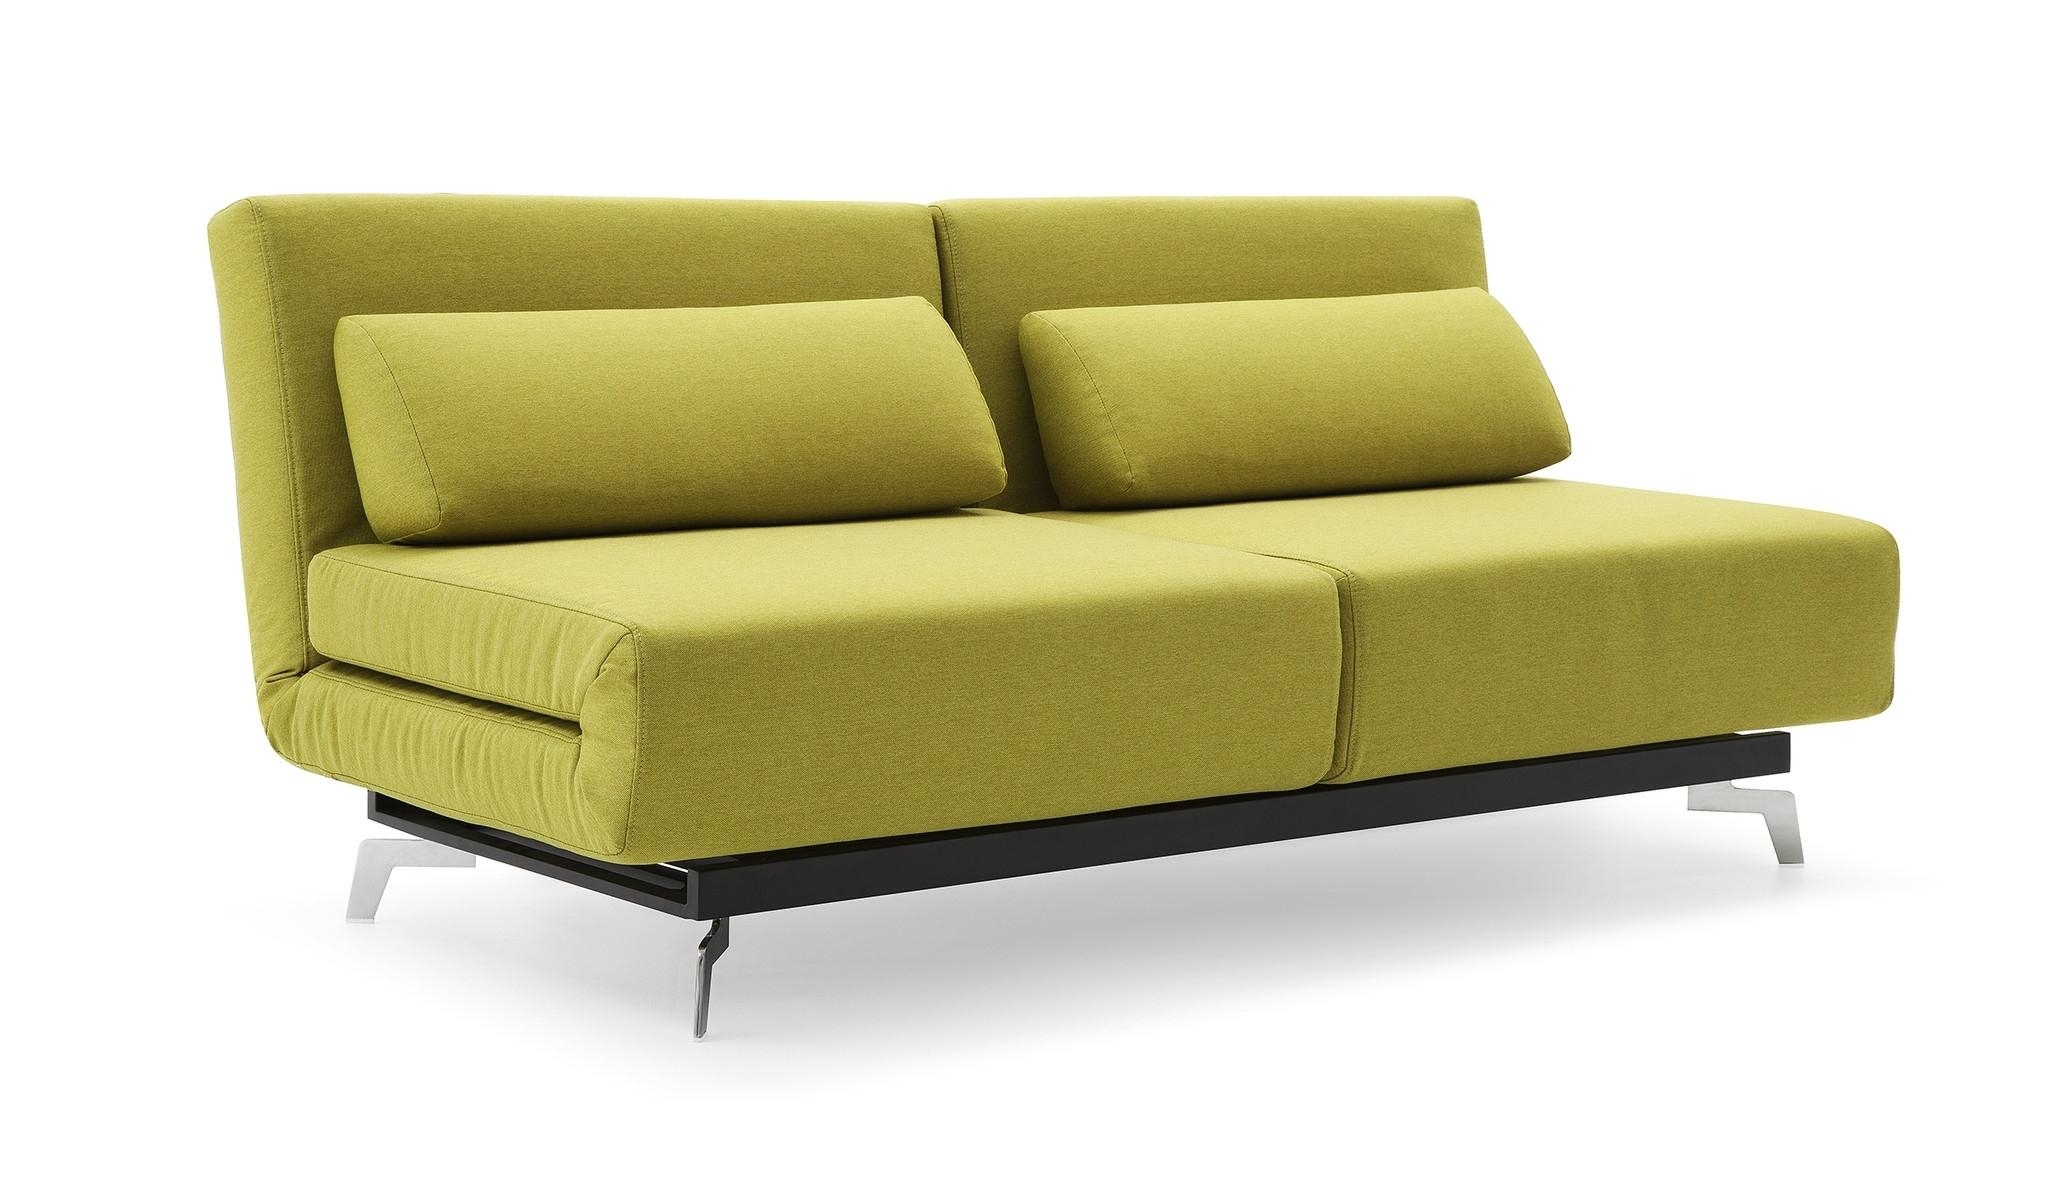 Single Sofa Chair Nz Menzilperde Net Fold Out For Marvelous Pertaining To Folding Sofa Chairs (Image 11 of 20)